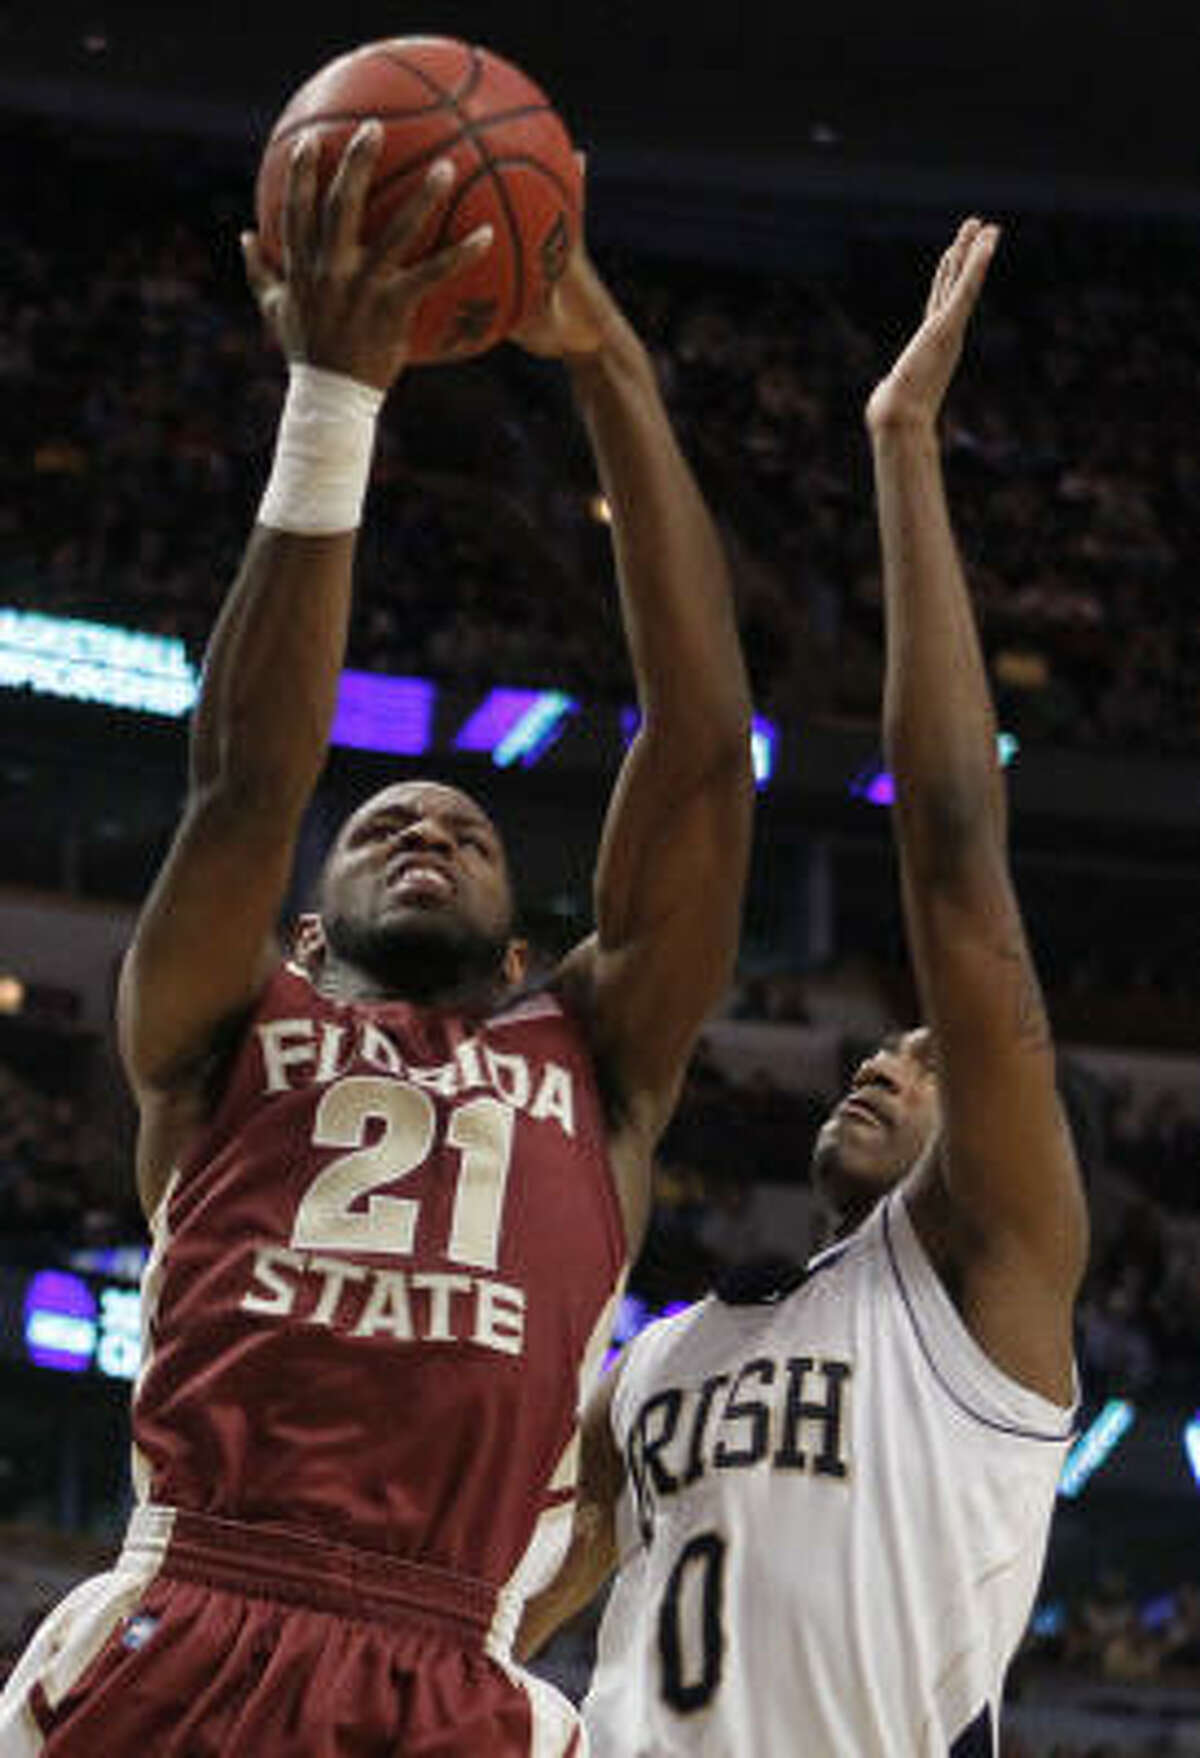 Florida State guard Michael Snaer (21) goes up for a basket against Notre Dame guard Eric Atkins (0).